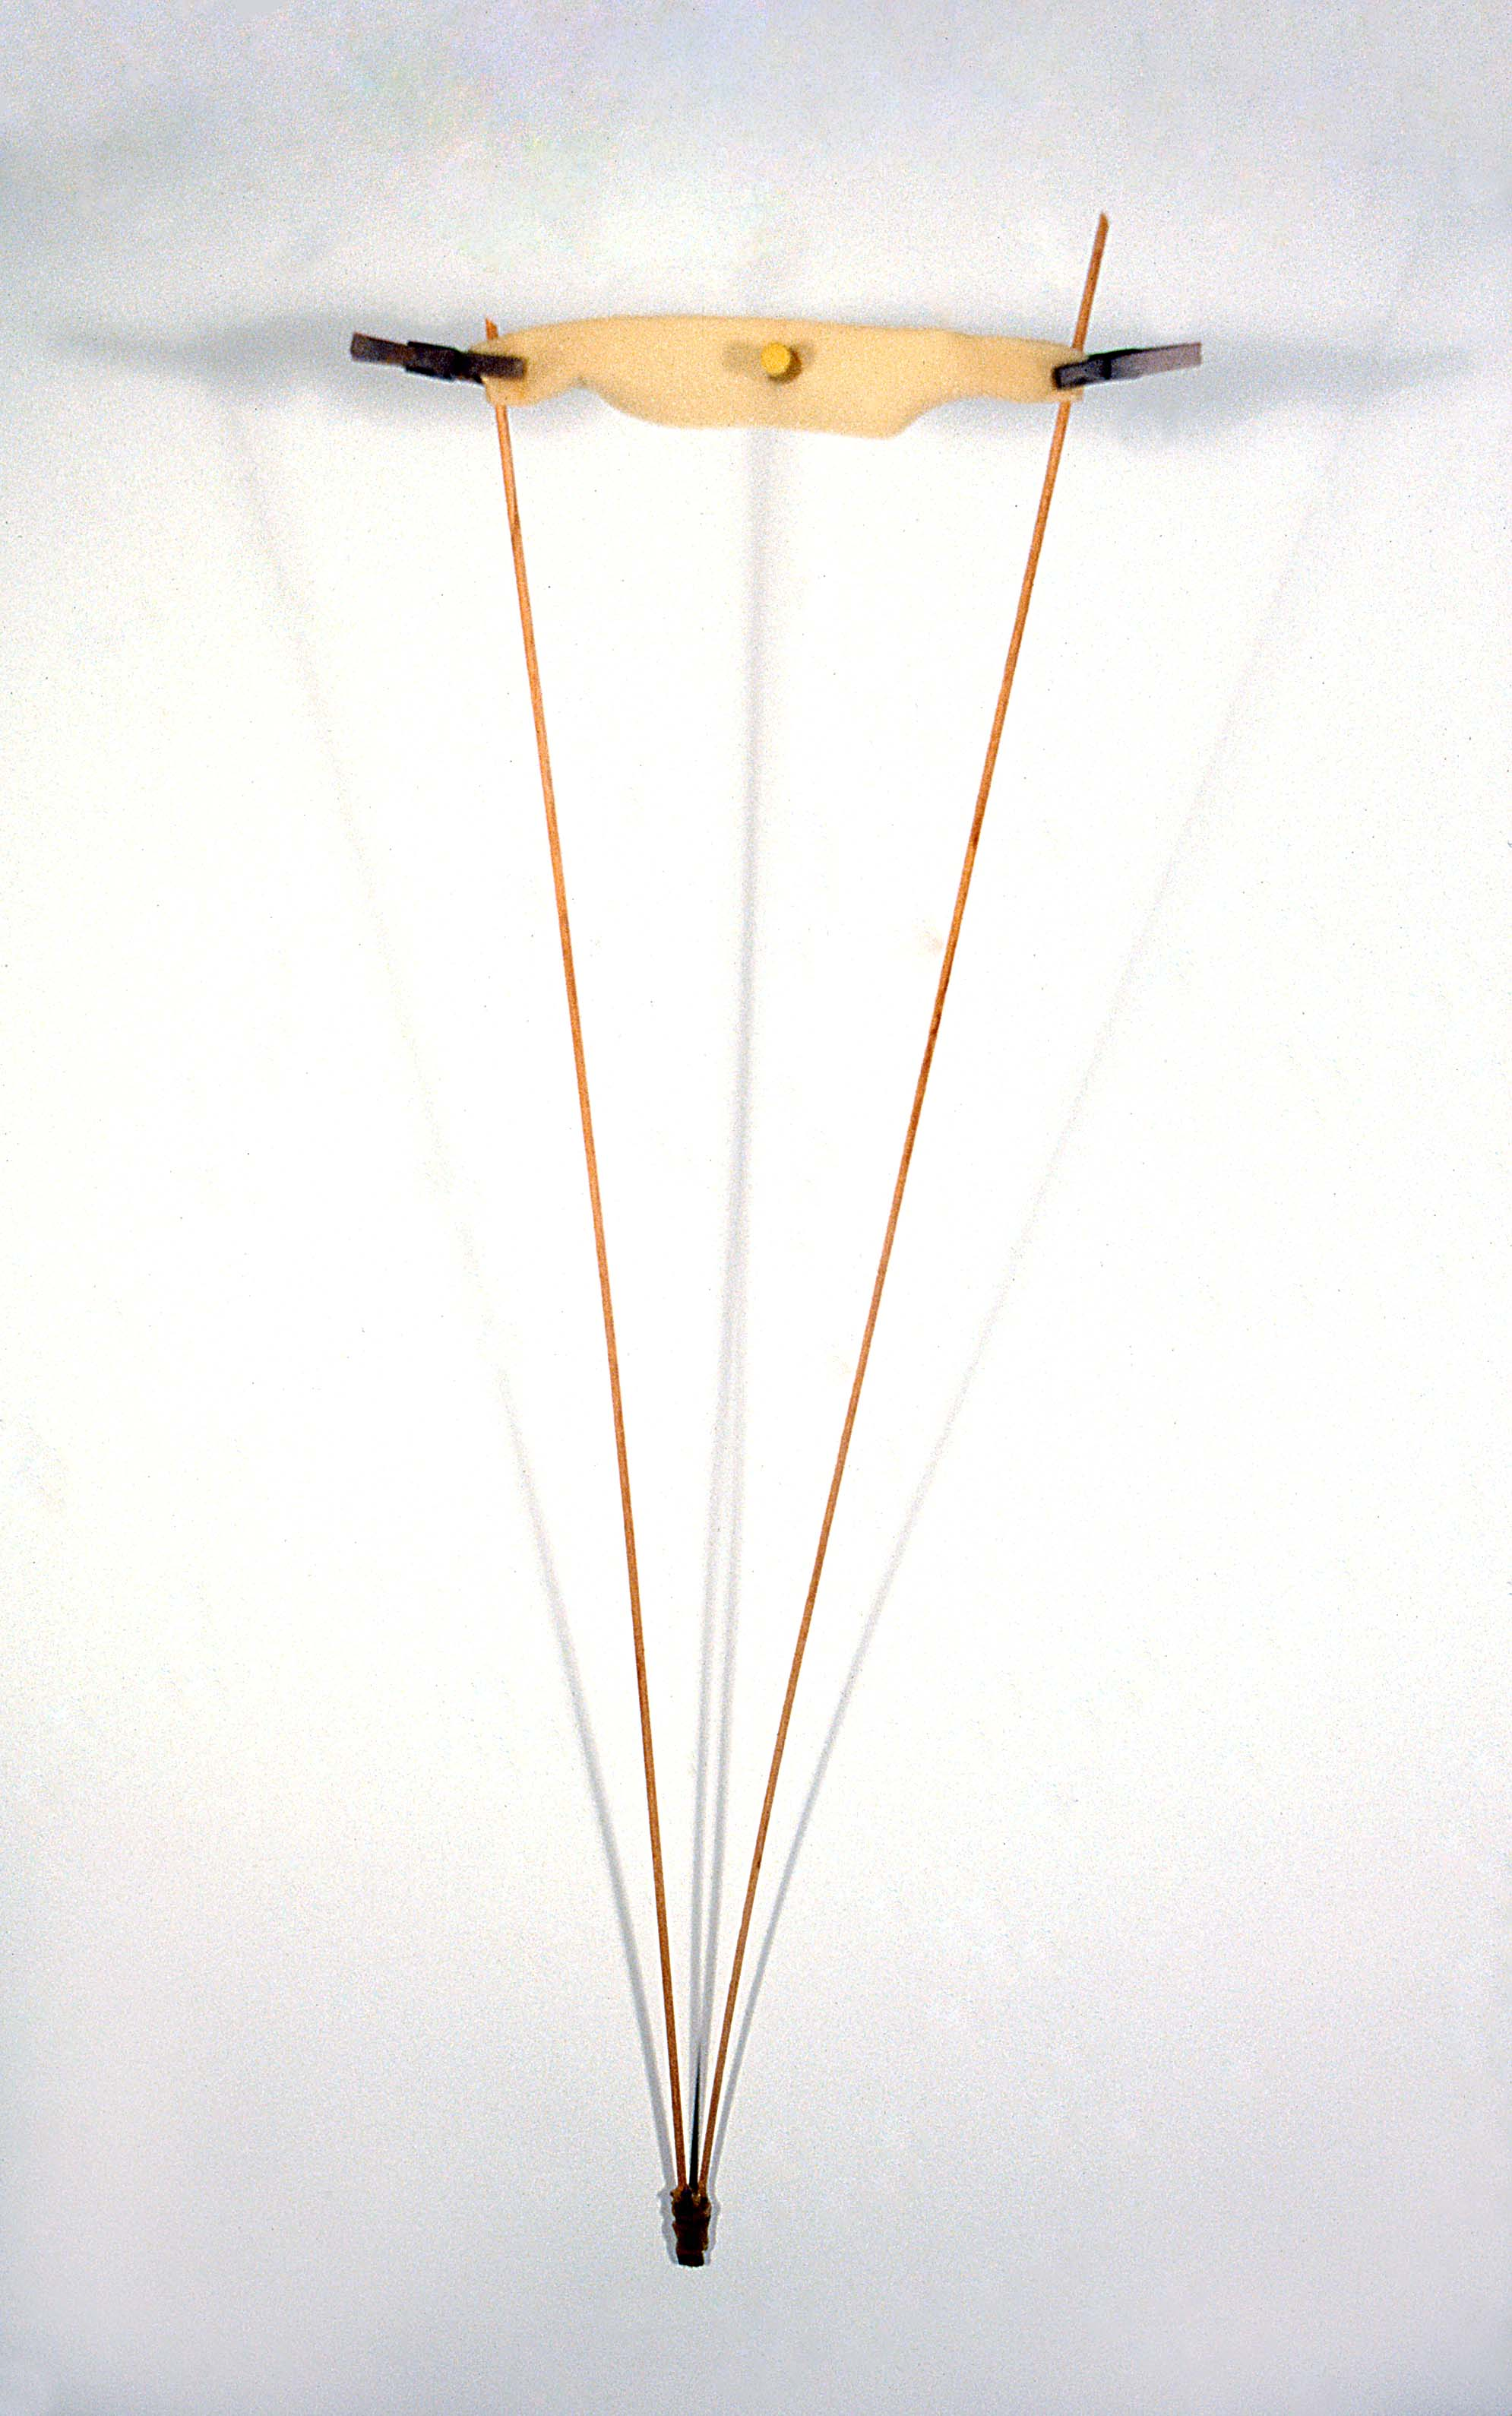 First objects